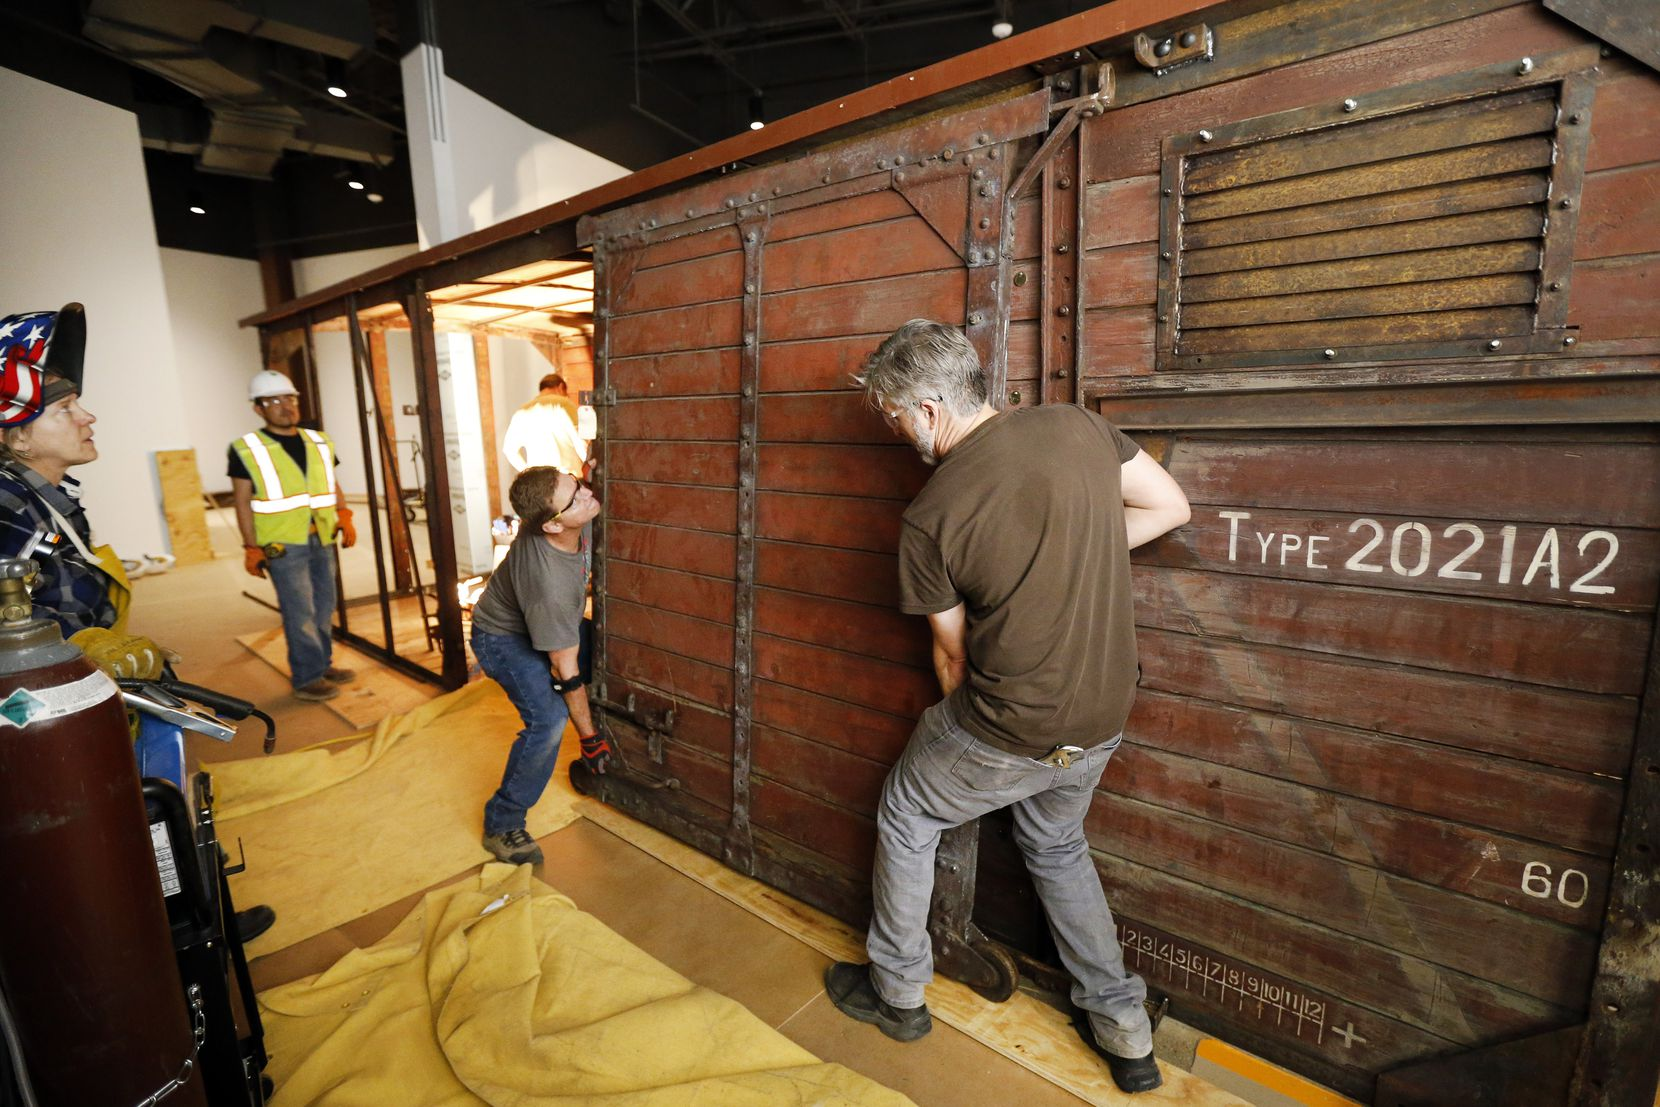 Jeff Green (right) and Dennis Manske erect a door on the rail car that will be on display as part of the new Dallas Holocaust and Human Rights Museum when it opens in September.